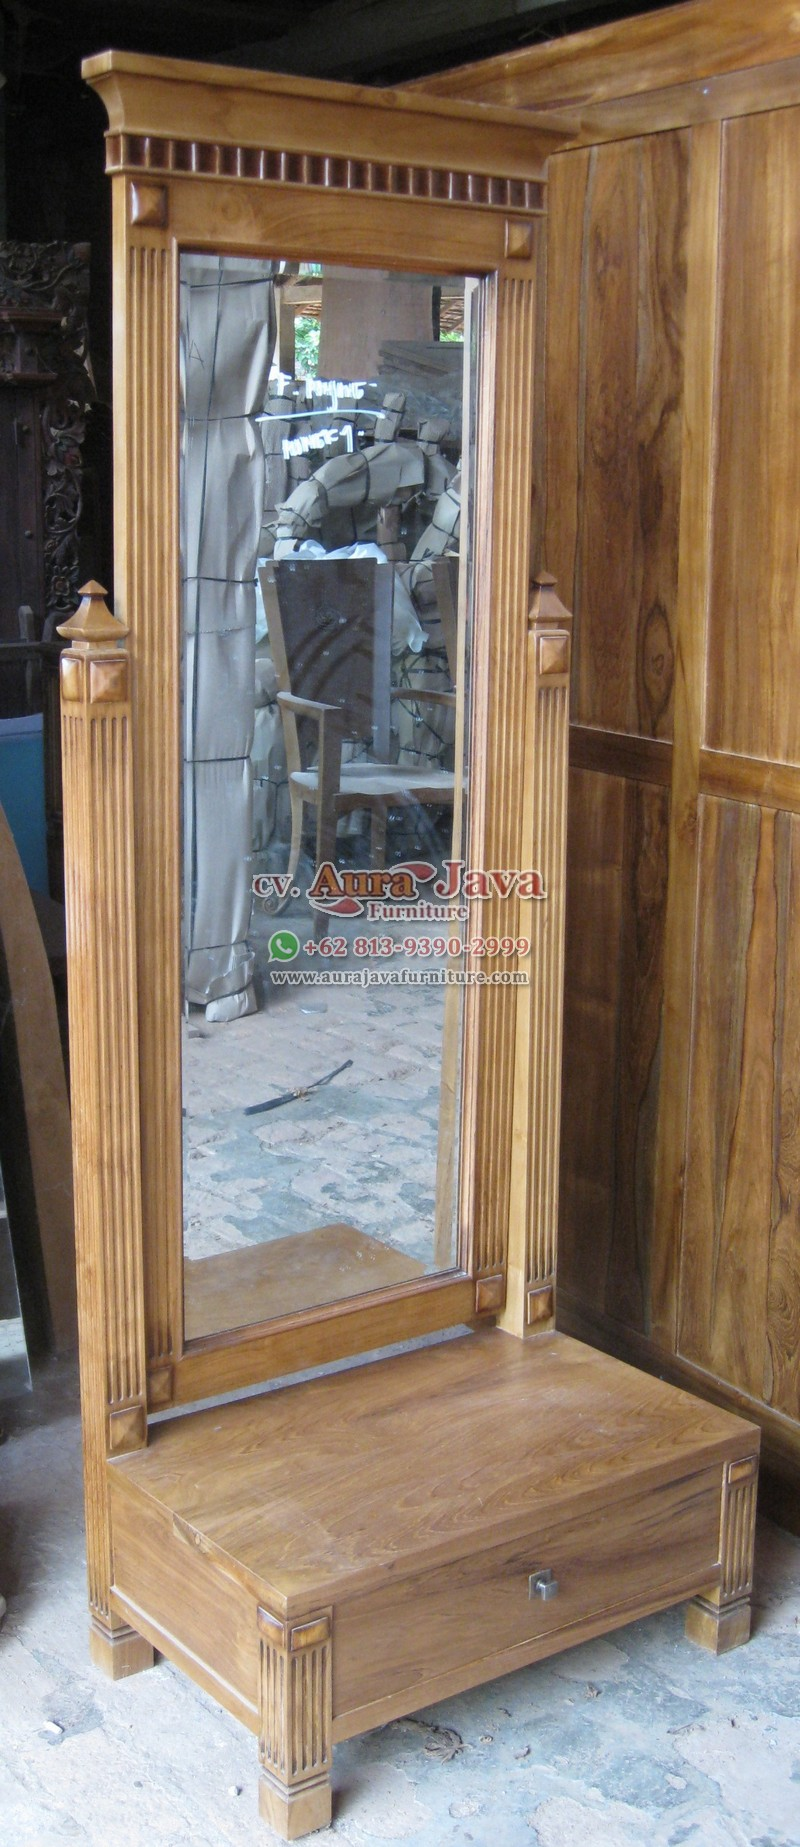 indonesia-teak-furniture-store-catalogue-mirrored-aura-java-jepara_042